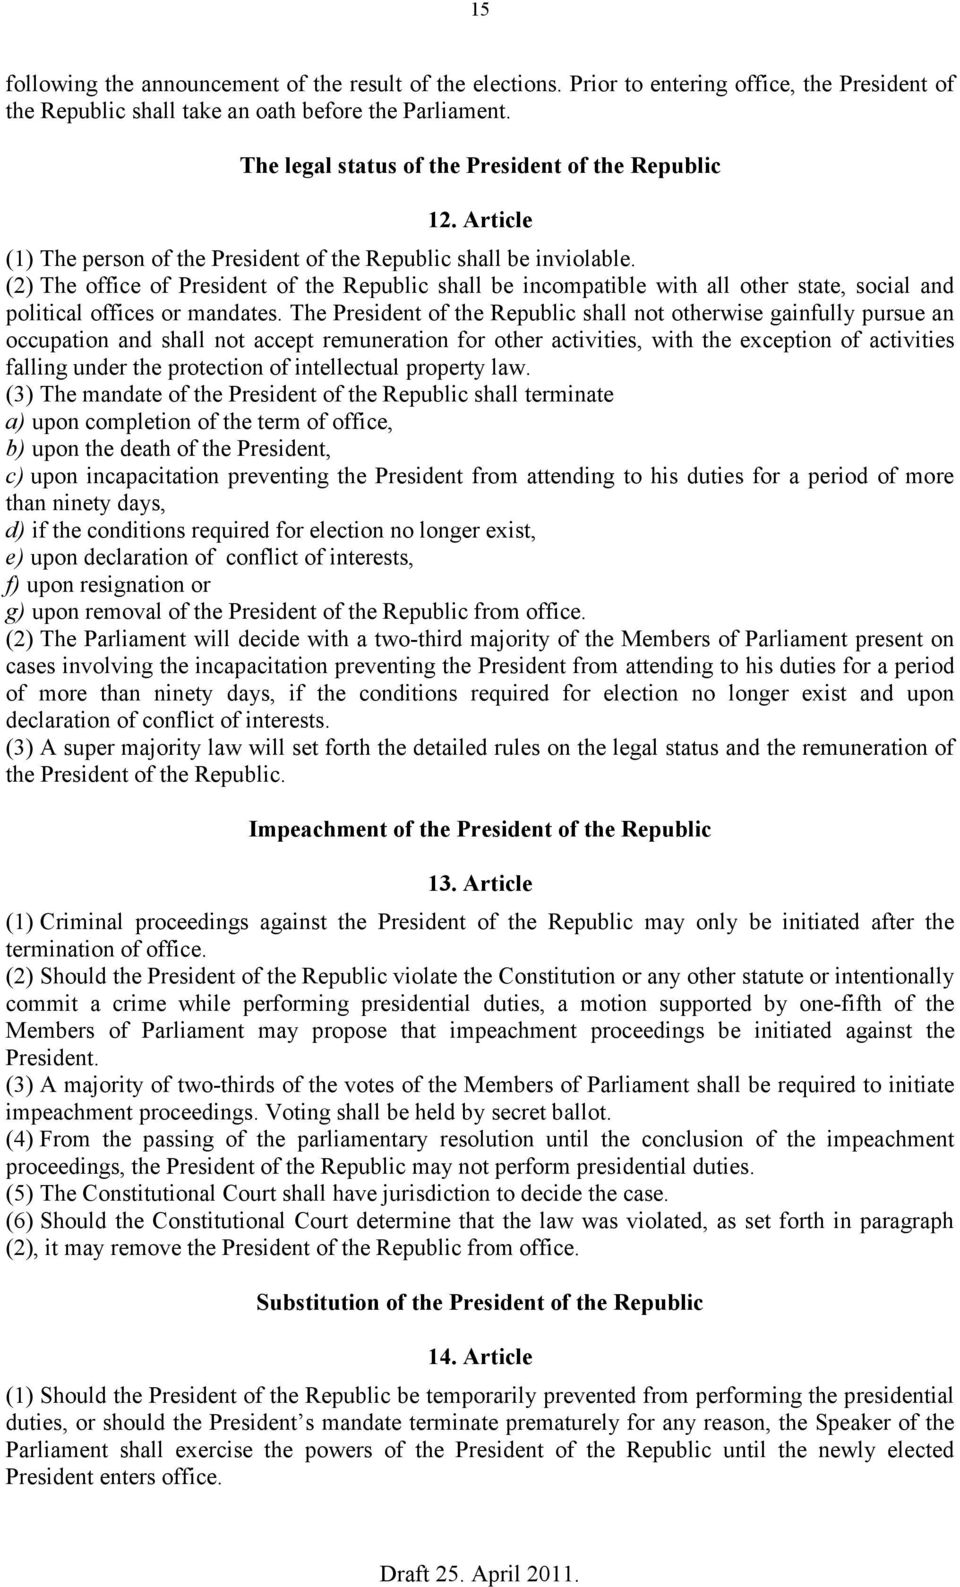 (2) The office of President of the Republic shall be incompatible with all other state, social and political offices or mandates.